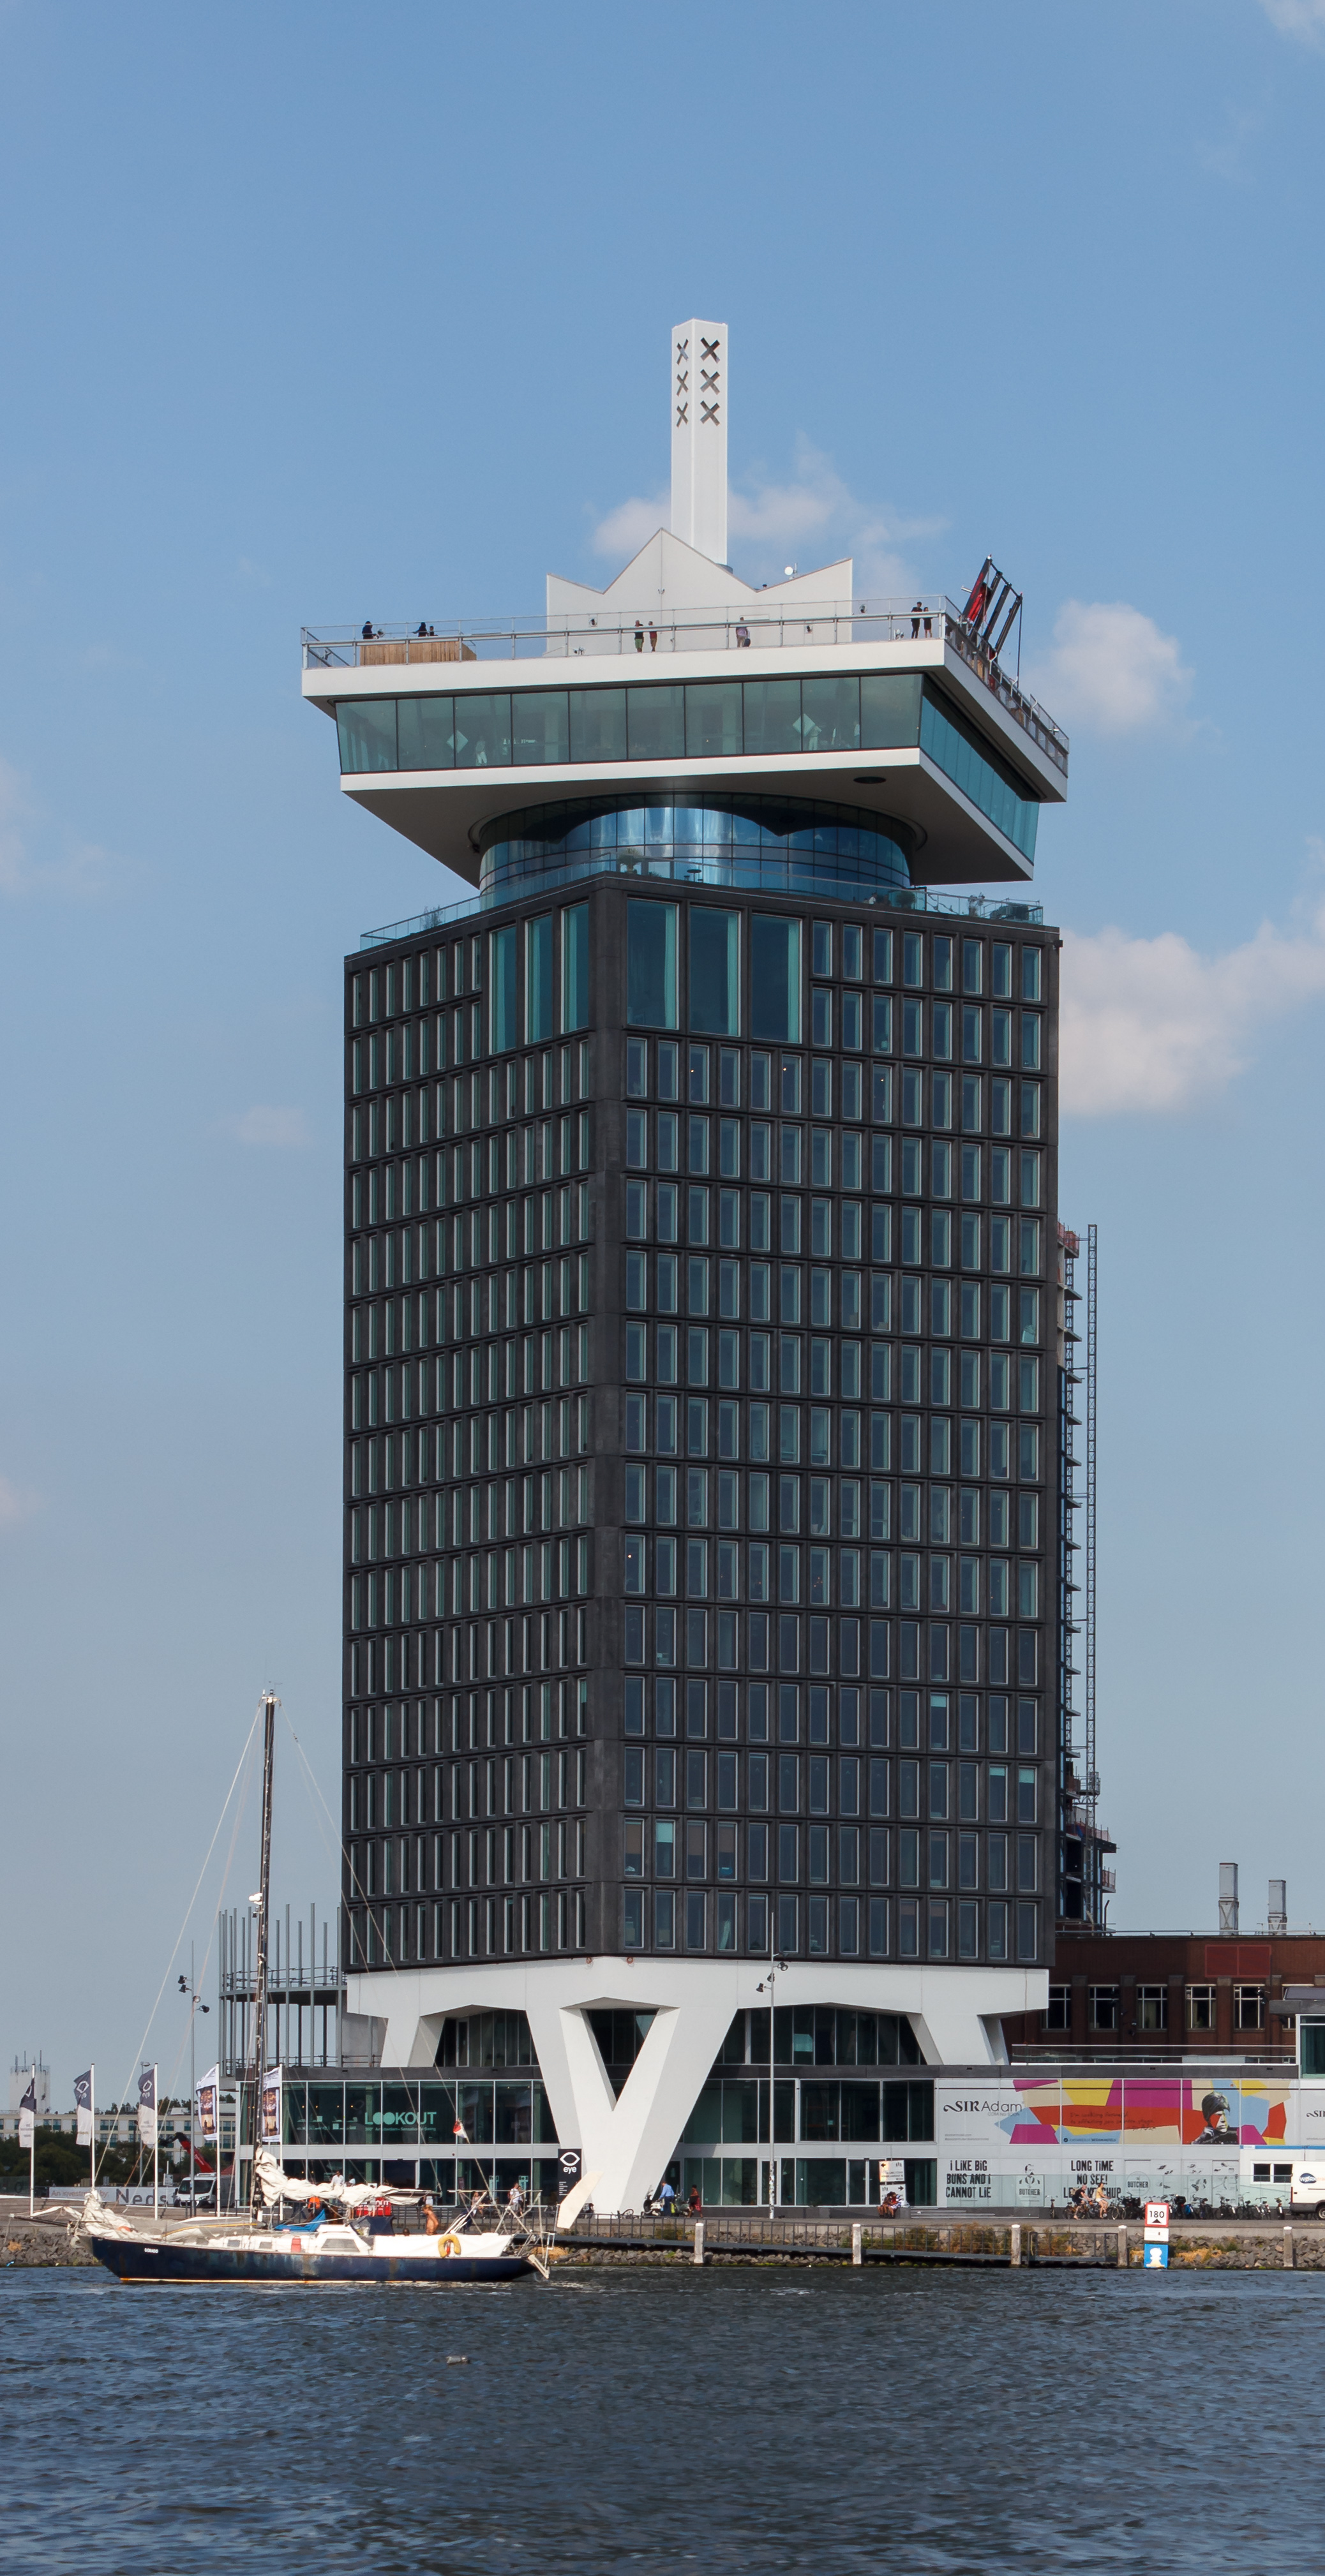 shell tower amsterdam-noord from tour boat 2016-09-12.jpg